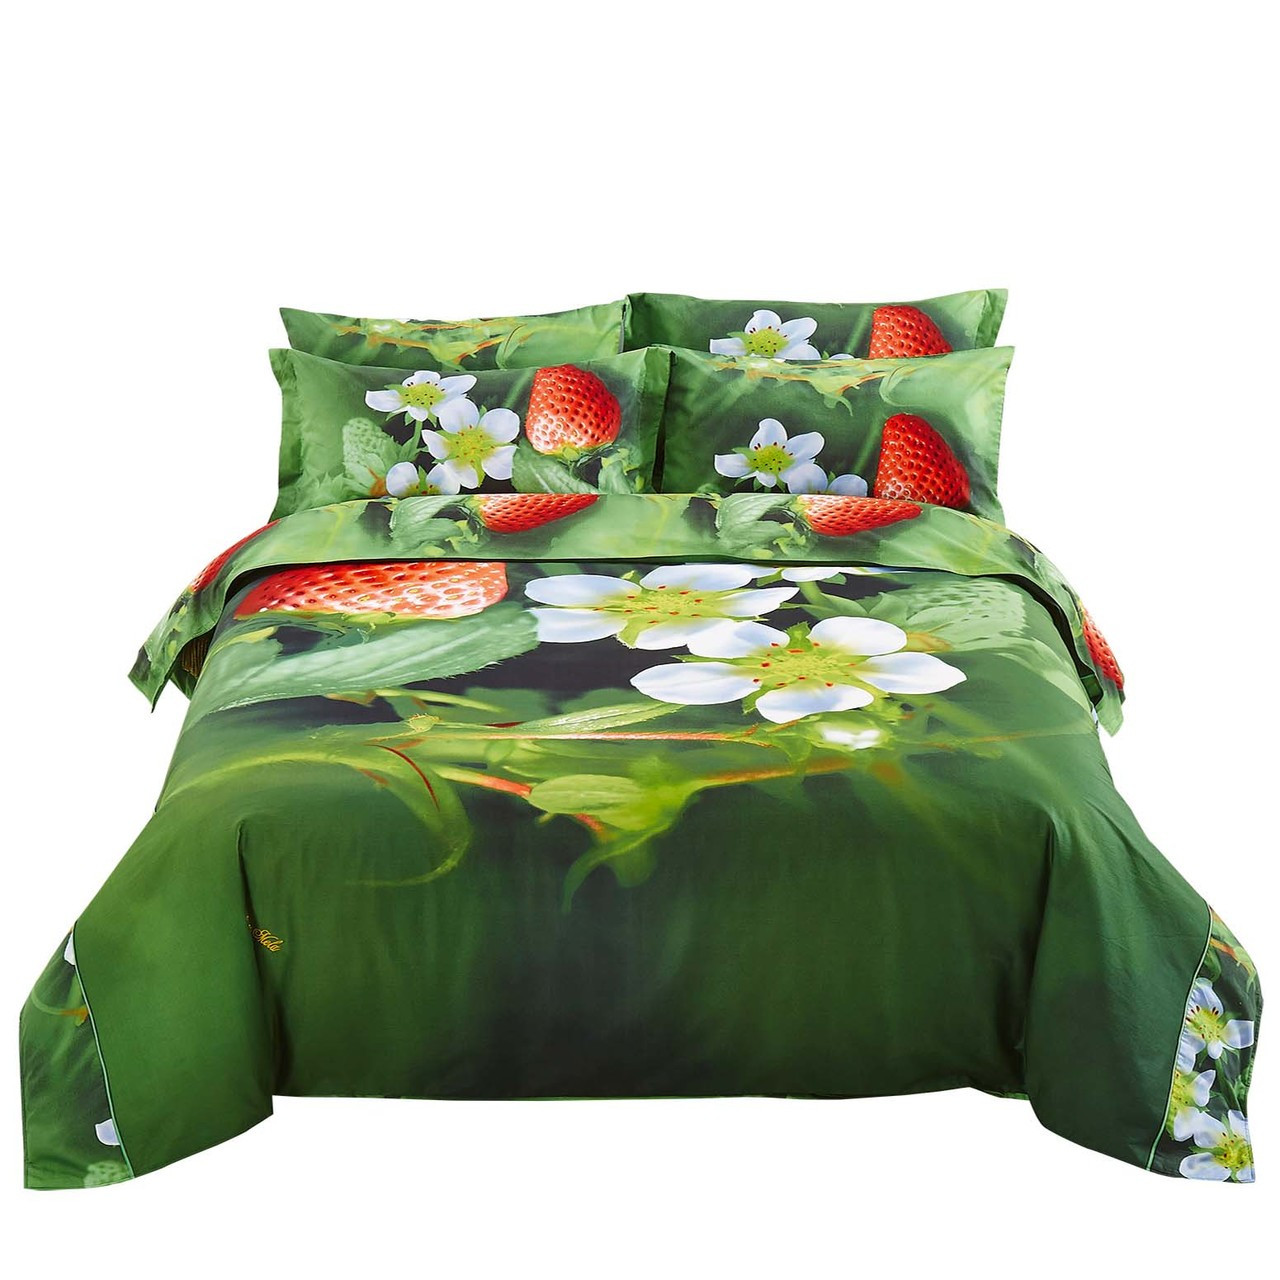 Twin XL Fitted Bedding Dolce Mela DM512T